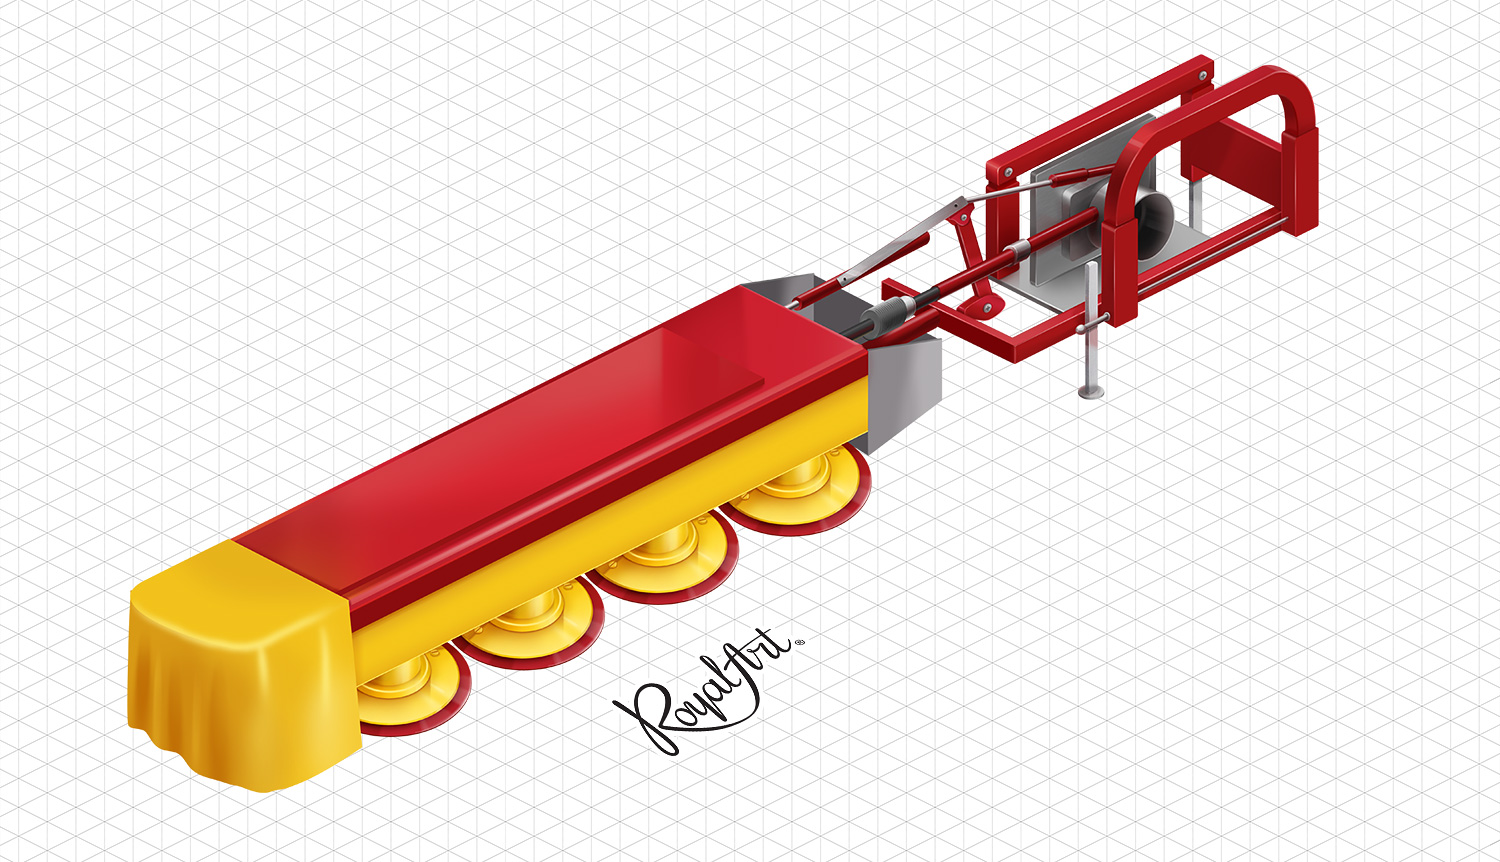 Mower. Isometric illustration for the AAT website. Advanced Agricultural Technologies.